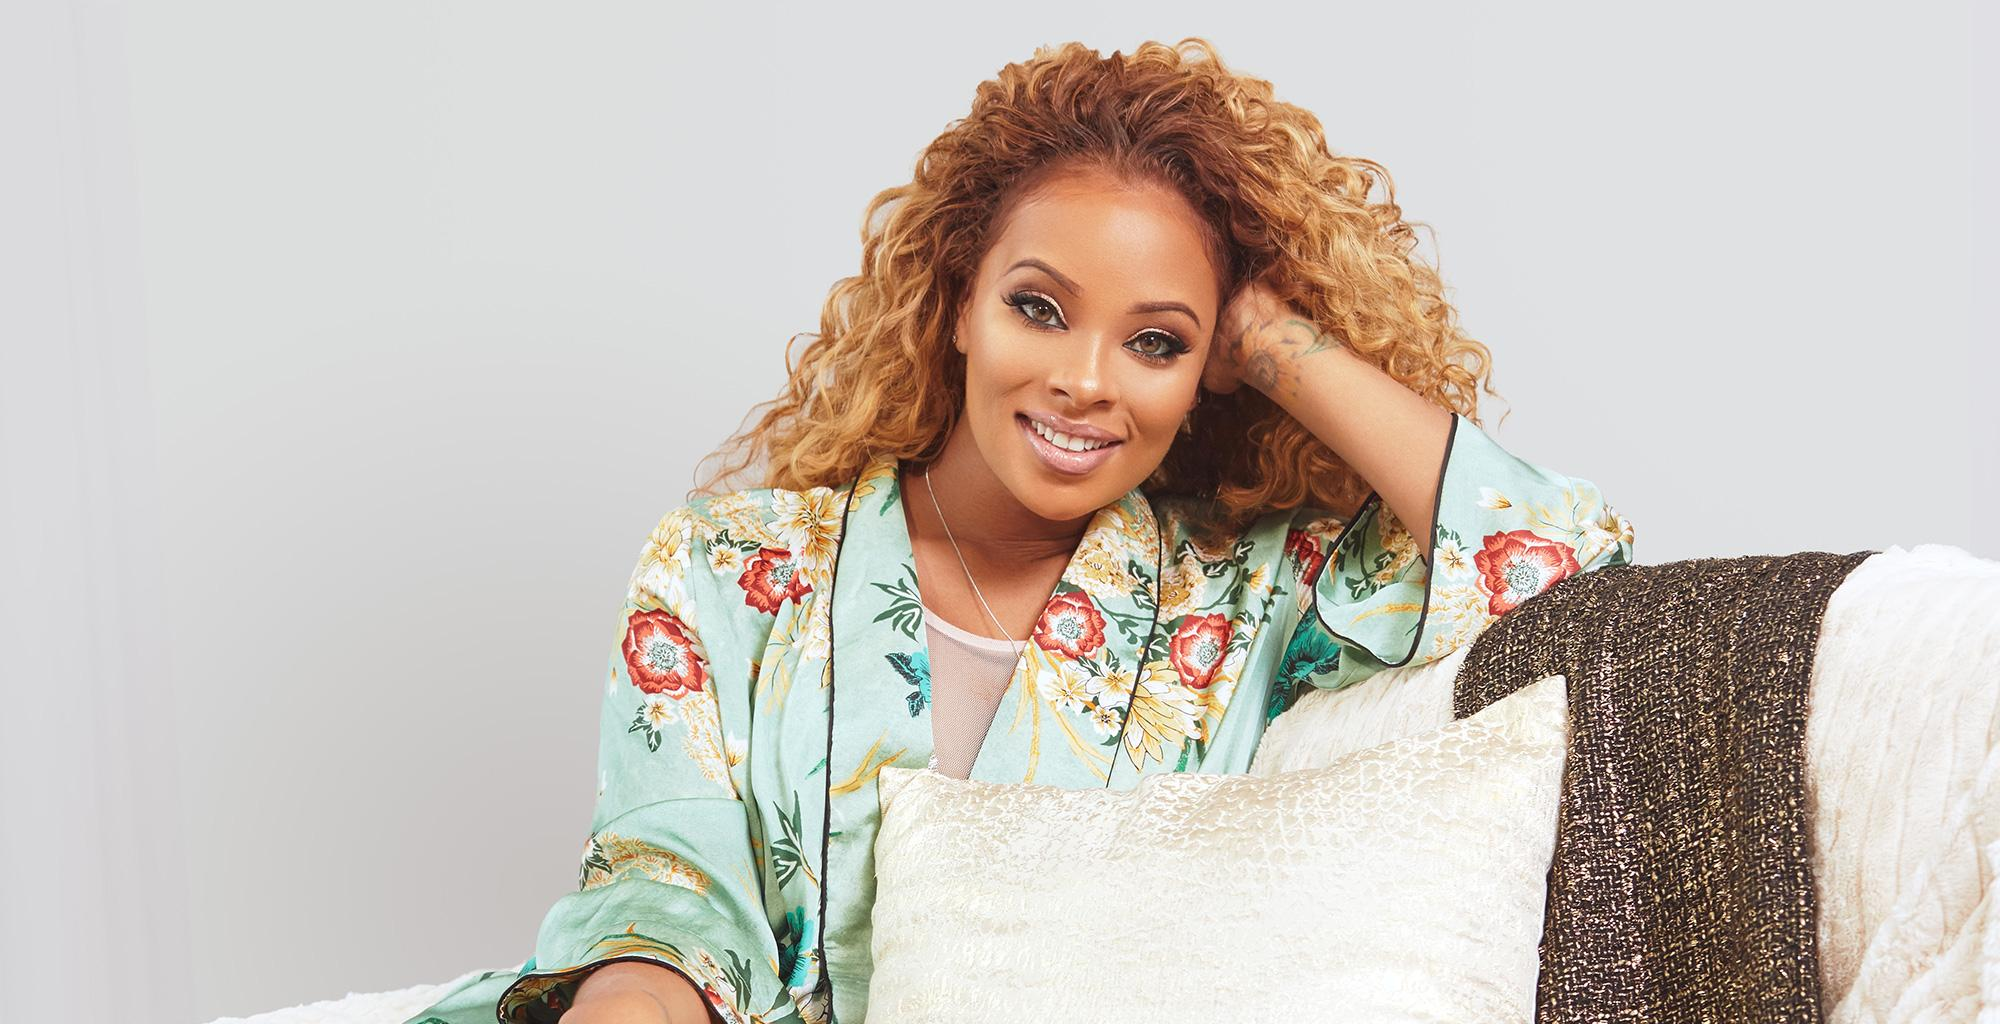 Eva Marcille Impresses Fans With This Outfit She Wore At The Beach - See It Here